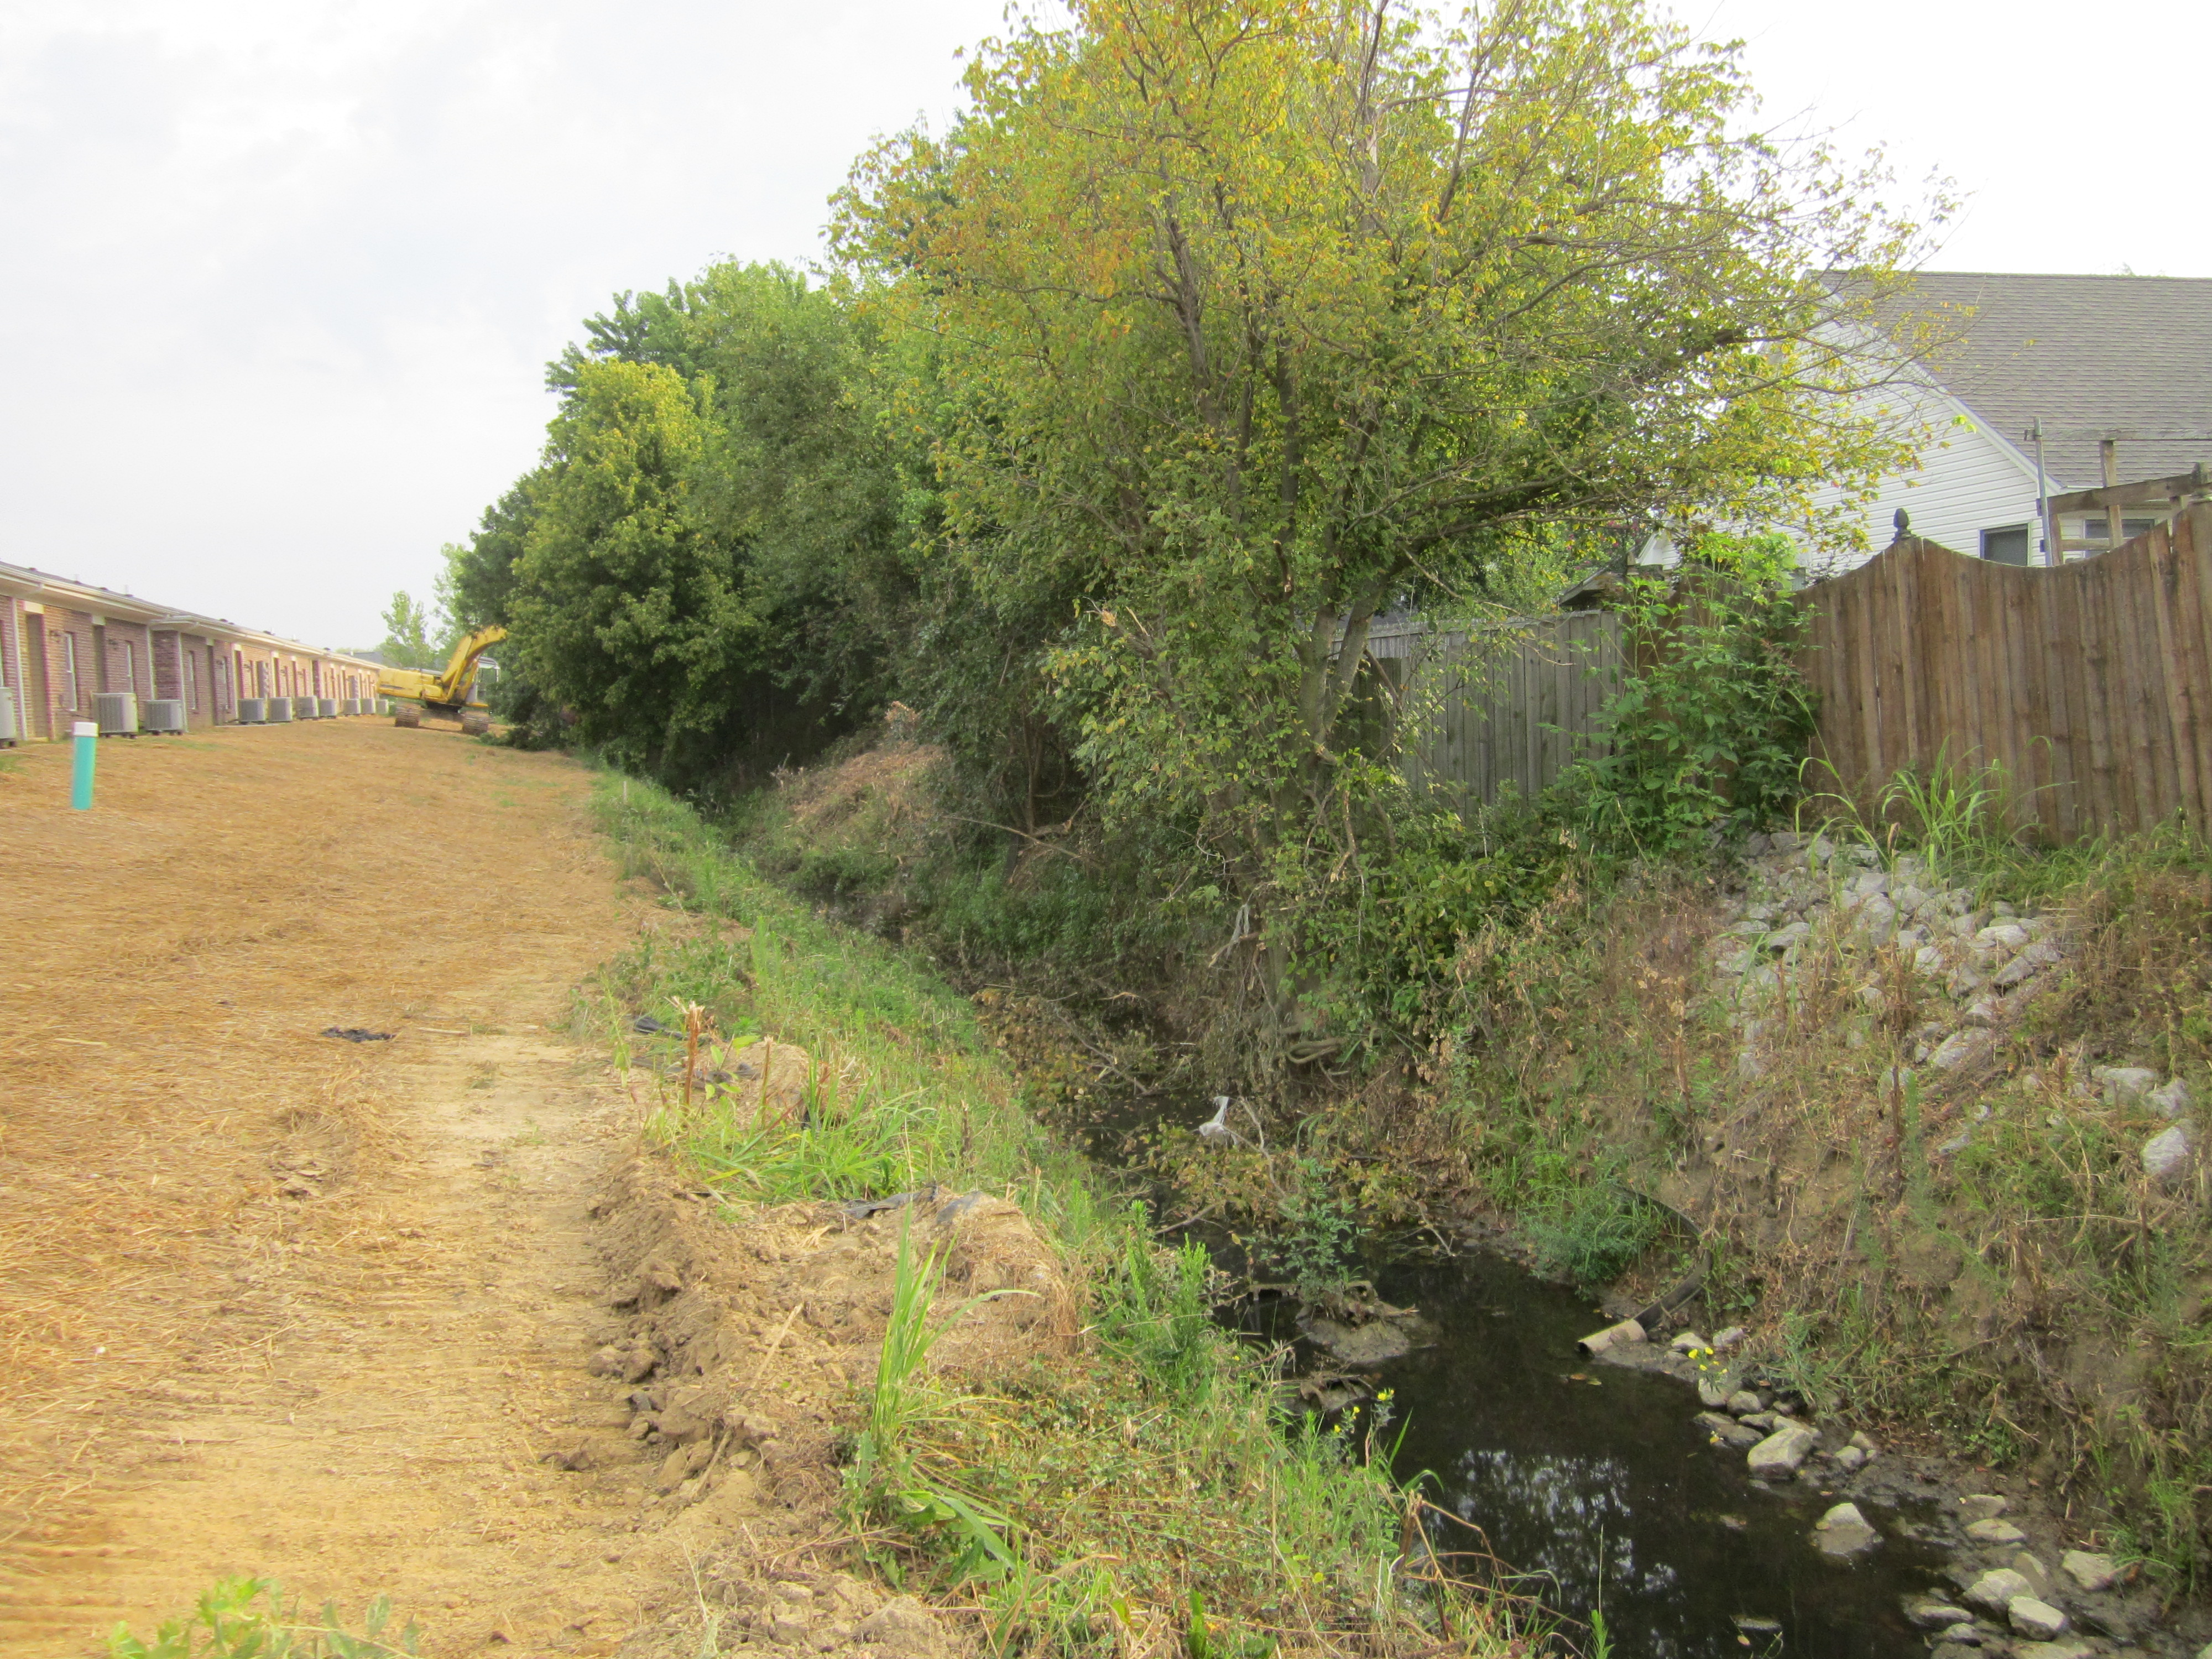 Tiger_Ditch_Stormwater_Project_Photo_01